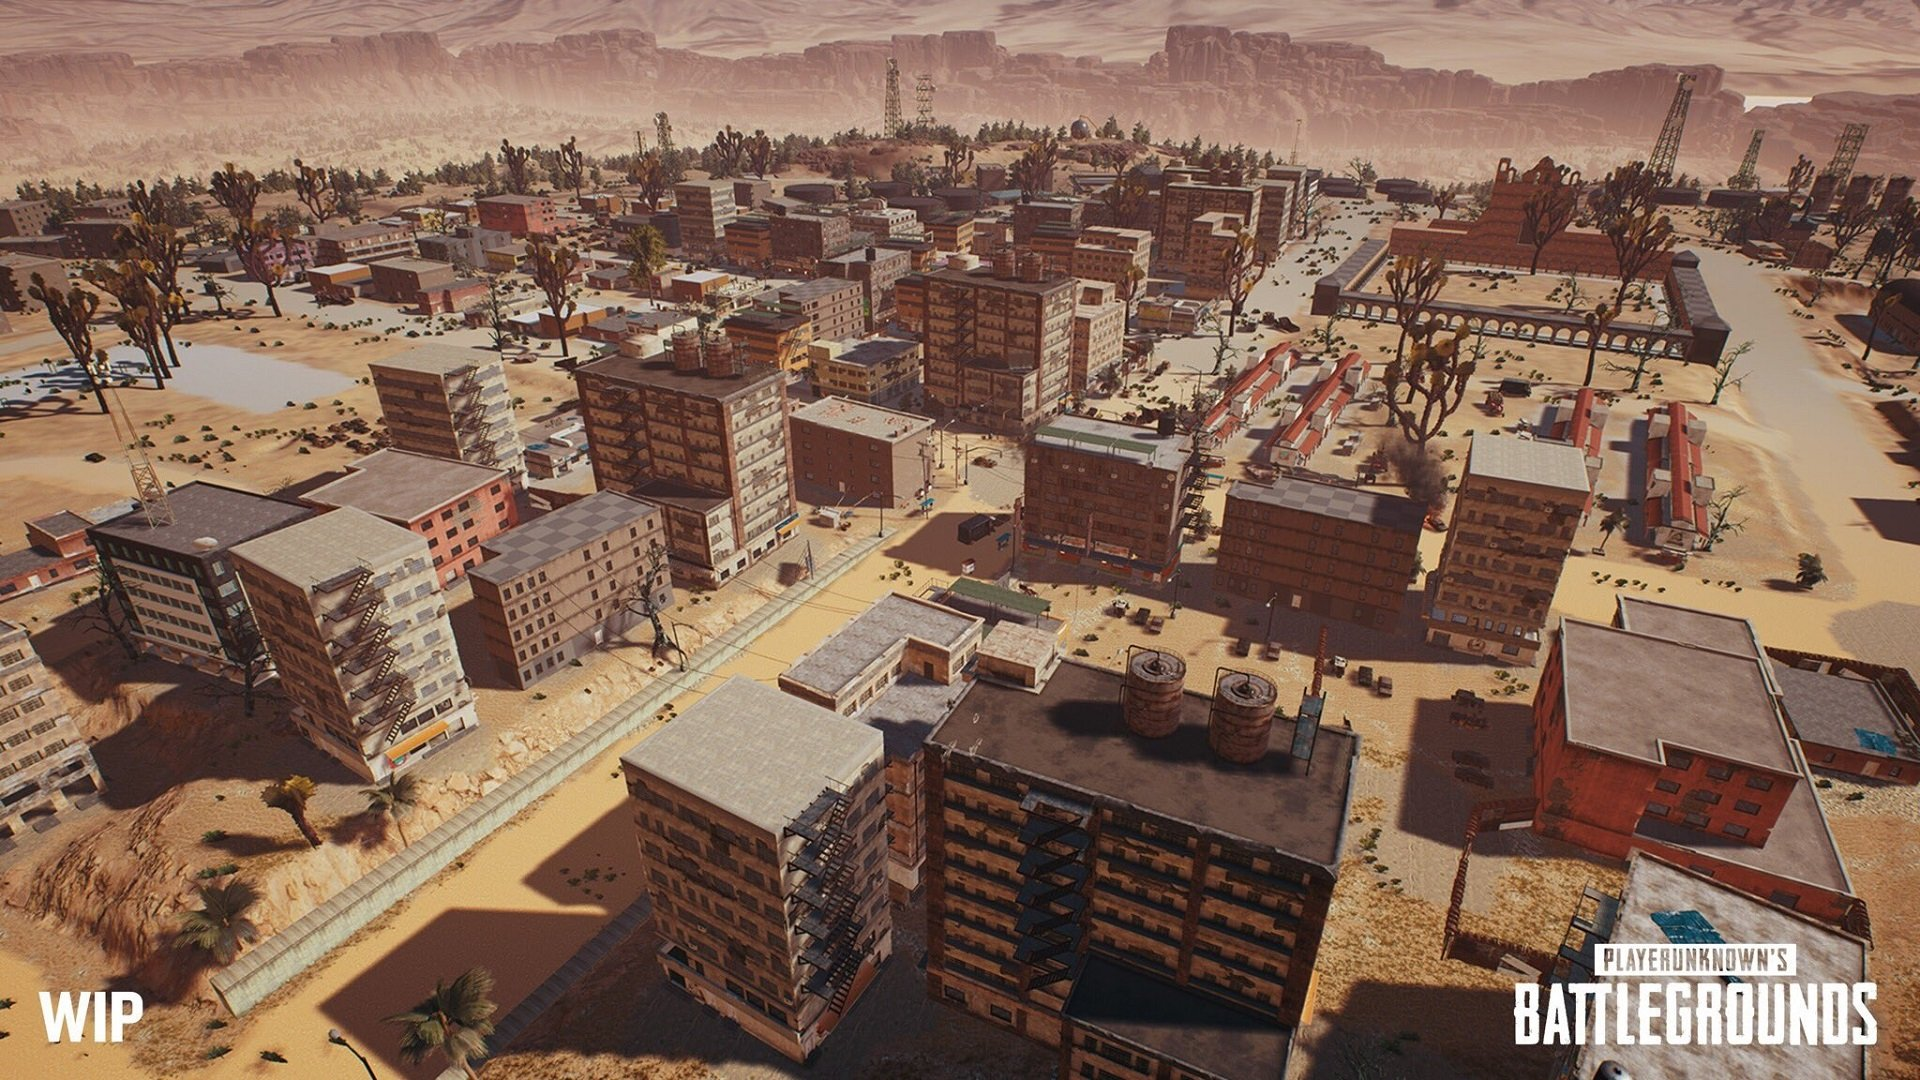 I can't wait to die countless times in PUBG's desert map screenshot